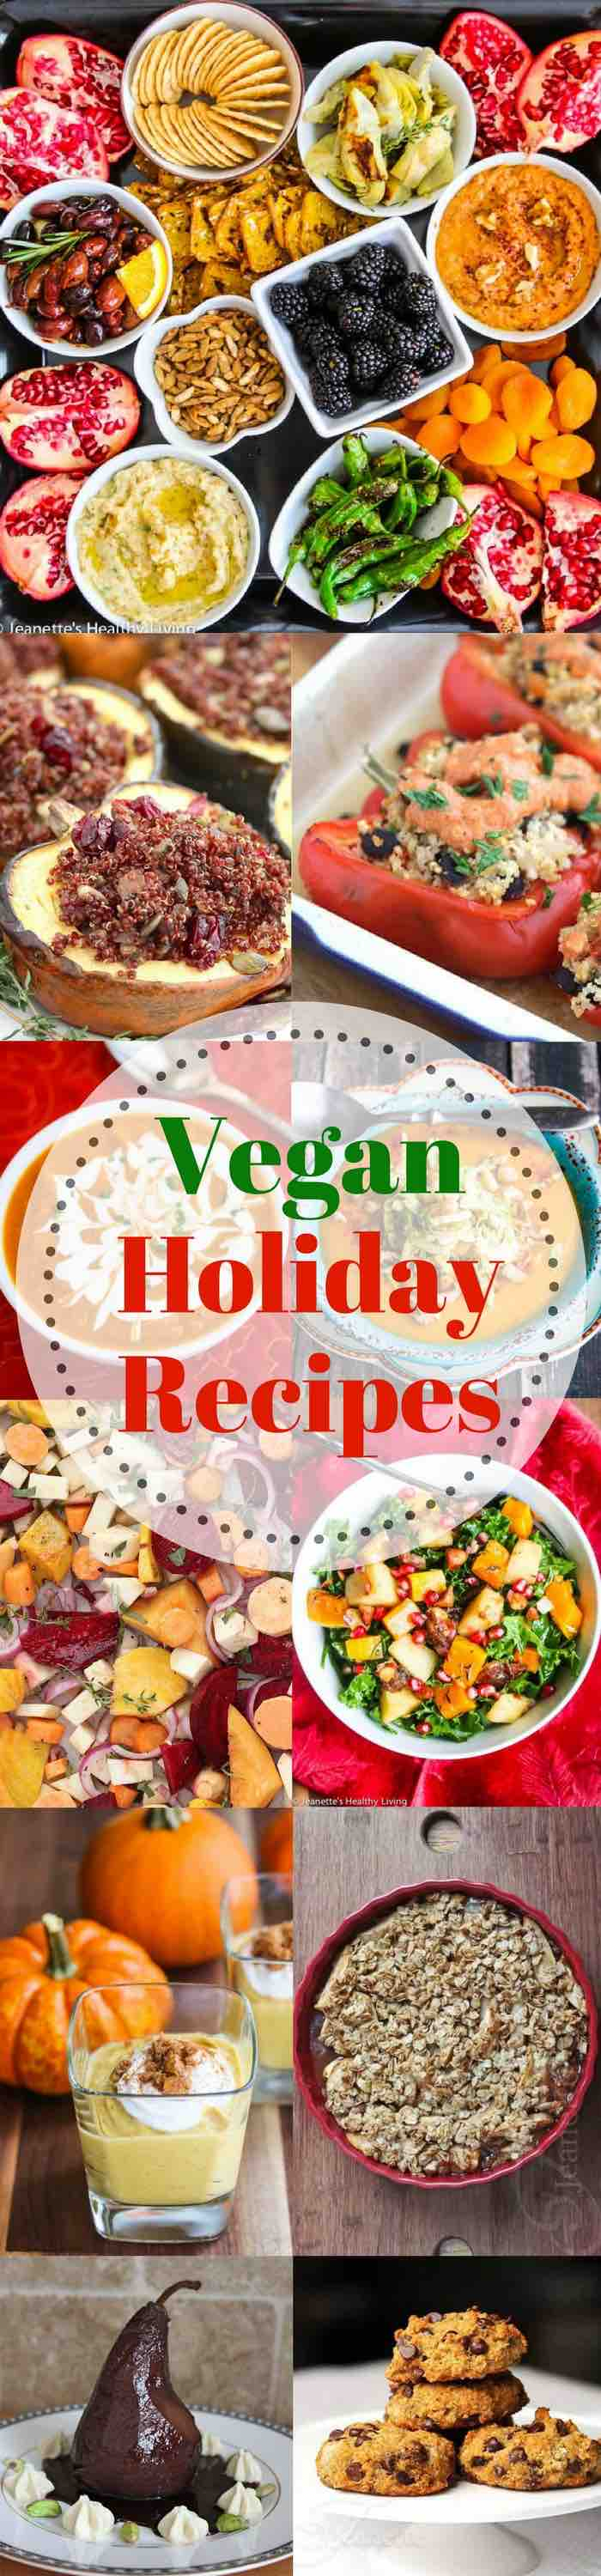 Vegan Holiday Recipes - please all of your guests with these vegan appetizer, soup, main course, side dish and dessert ideas. TIps for converting recipes to vegan.